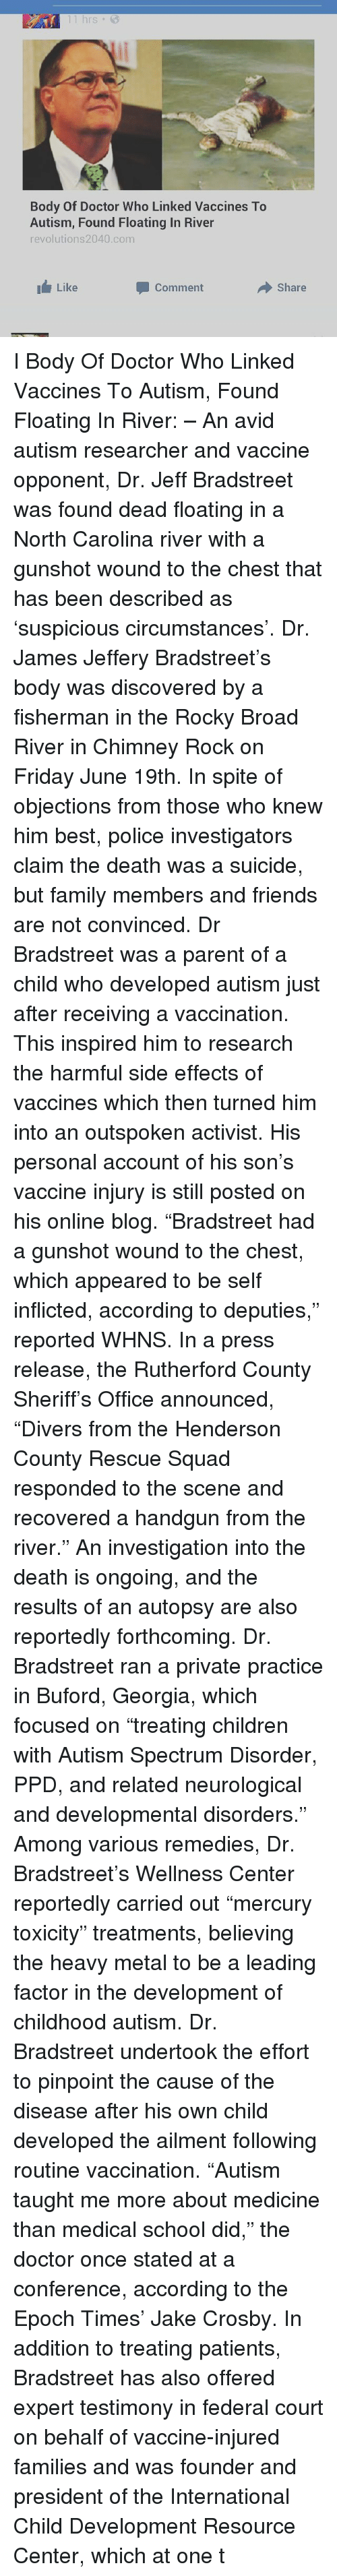 """Memes, Georgia, and North Carolina: 11 hrs  Body Of Doctor Who Linked Vaccines To  Autism, Found Floating In River  revolutions2040 com  Like  Comment  Share I Body Of Doctor Who Linked Vaccines To Autism, Found Floating In River: – An avid autism researcher and vaccine opponent, Dr. Jeff Bradstreet was found dead floating in a North Carolina river with a gunshot wound to the chest that has been described as 'suspicious circumstances'. Dr. James Jeffery Bradstreet's body was discovered by a fisherman in the Rocky Broad River in Chimney Rock on Friday June 19th. In spite of objections from those who knew him best, police investigators claim the death was a suicide, but family members and friends are not convinced. Dr Bradstreet was a parent of a child who developed autism just after receiving a vaccination. This inspired him to research the harmful side effects of vaccines which then turned him into an outspoken activist. His personal account of his son's vaccine injury is still posted on his online blog. """"Bradstreet had a gunshot wound to the chest, which appeared to be self inflicted, according to deputies,"""" reported WHNS. In a press release, the Rutherford County Sheriff's Office announced, """"Divers from the Henderson County Rescue Squad responded to the scene and recovered a handgun from the river."""" An investigation into the death is ongoing, and the results of an autopsy are also reportedly forthcoming. Dr. Bradstreet ran a private practice in Buford, Georgia, which focused on """"treating children with Autism Spectrum Disorder, PPD, and related neurological and developmental disorders."""" Among various remedies, Dr. Bradstreet's Wellness Center reportedly carried out """"mercury toxicity"""" treatments, believing the heavy metal to be a leading factor in the development of childhood autism. Dr. Bradstreet undertook the effort to pinpoint the cause of the disease after his own child developed the ailment following routine vaccination. """"Autism taught me more about medicine t"""